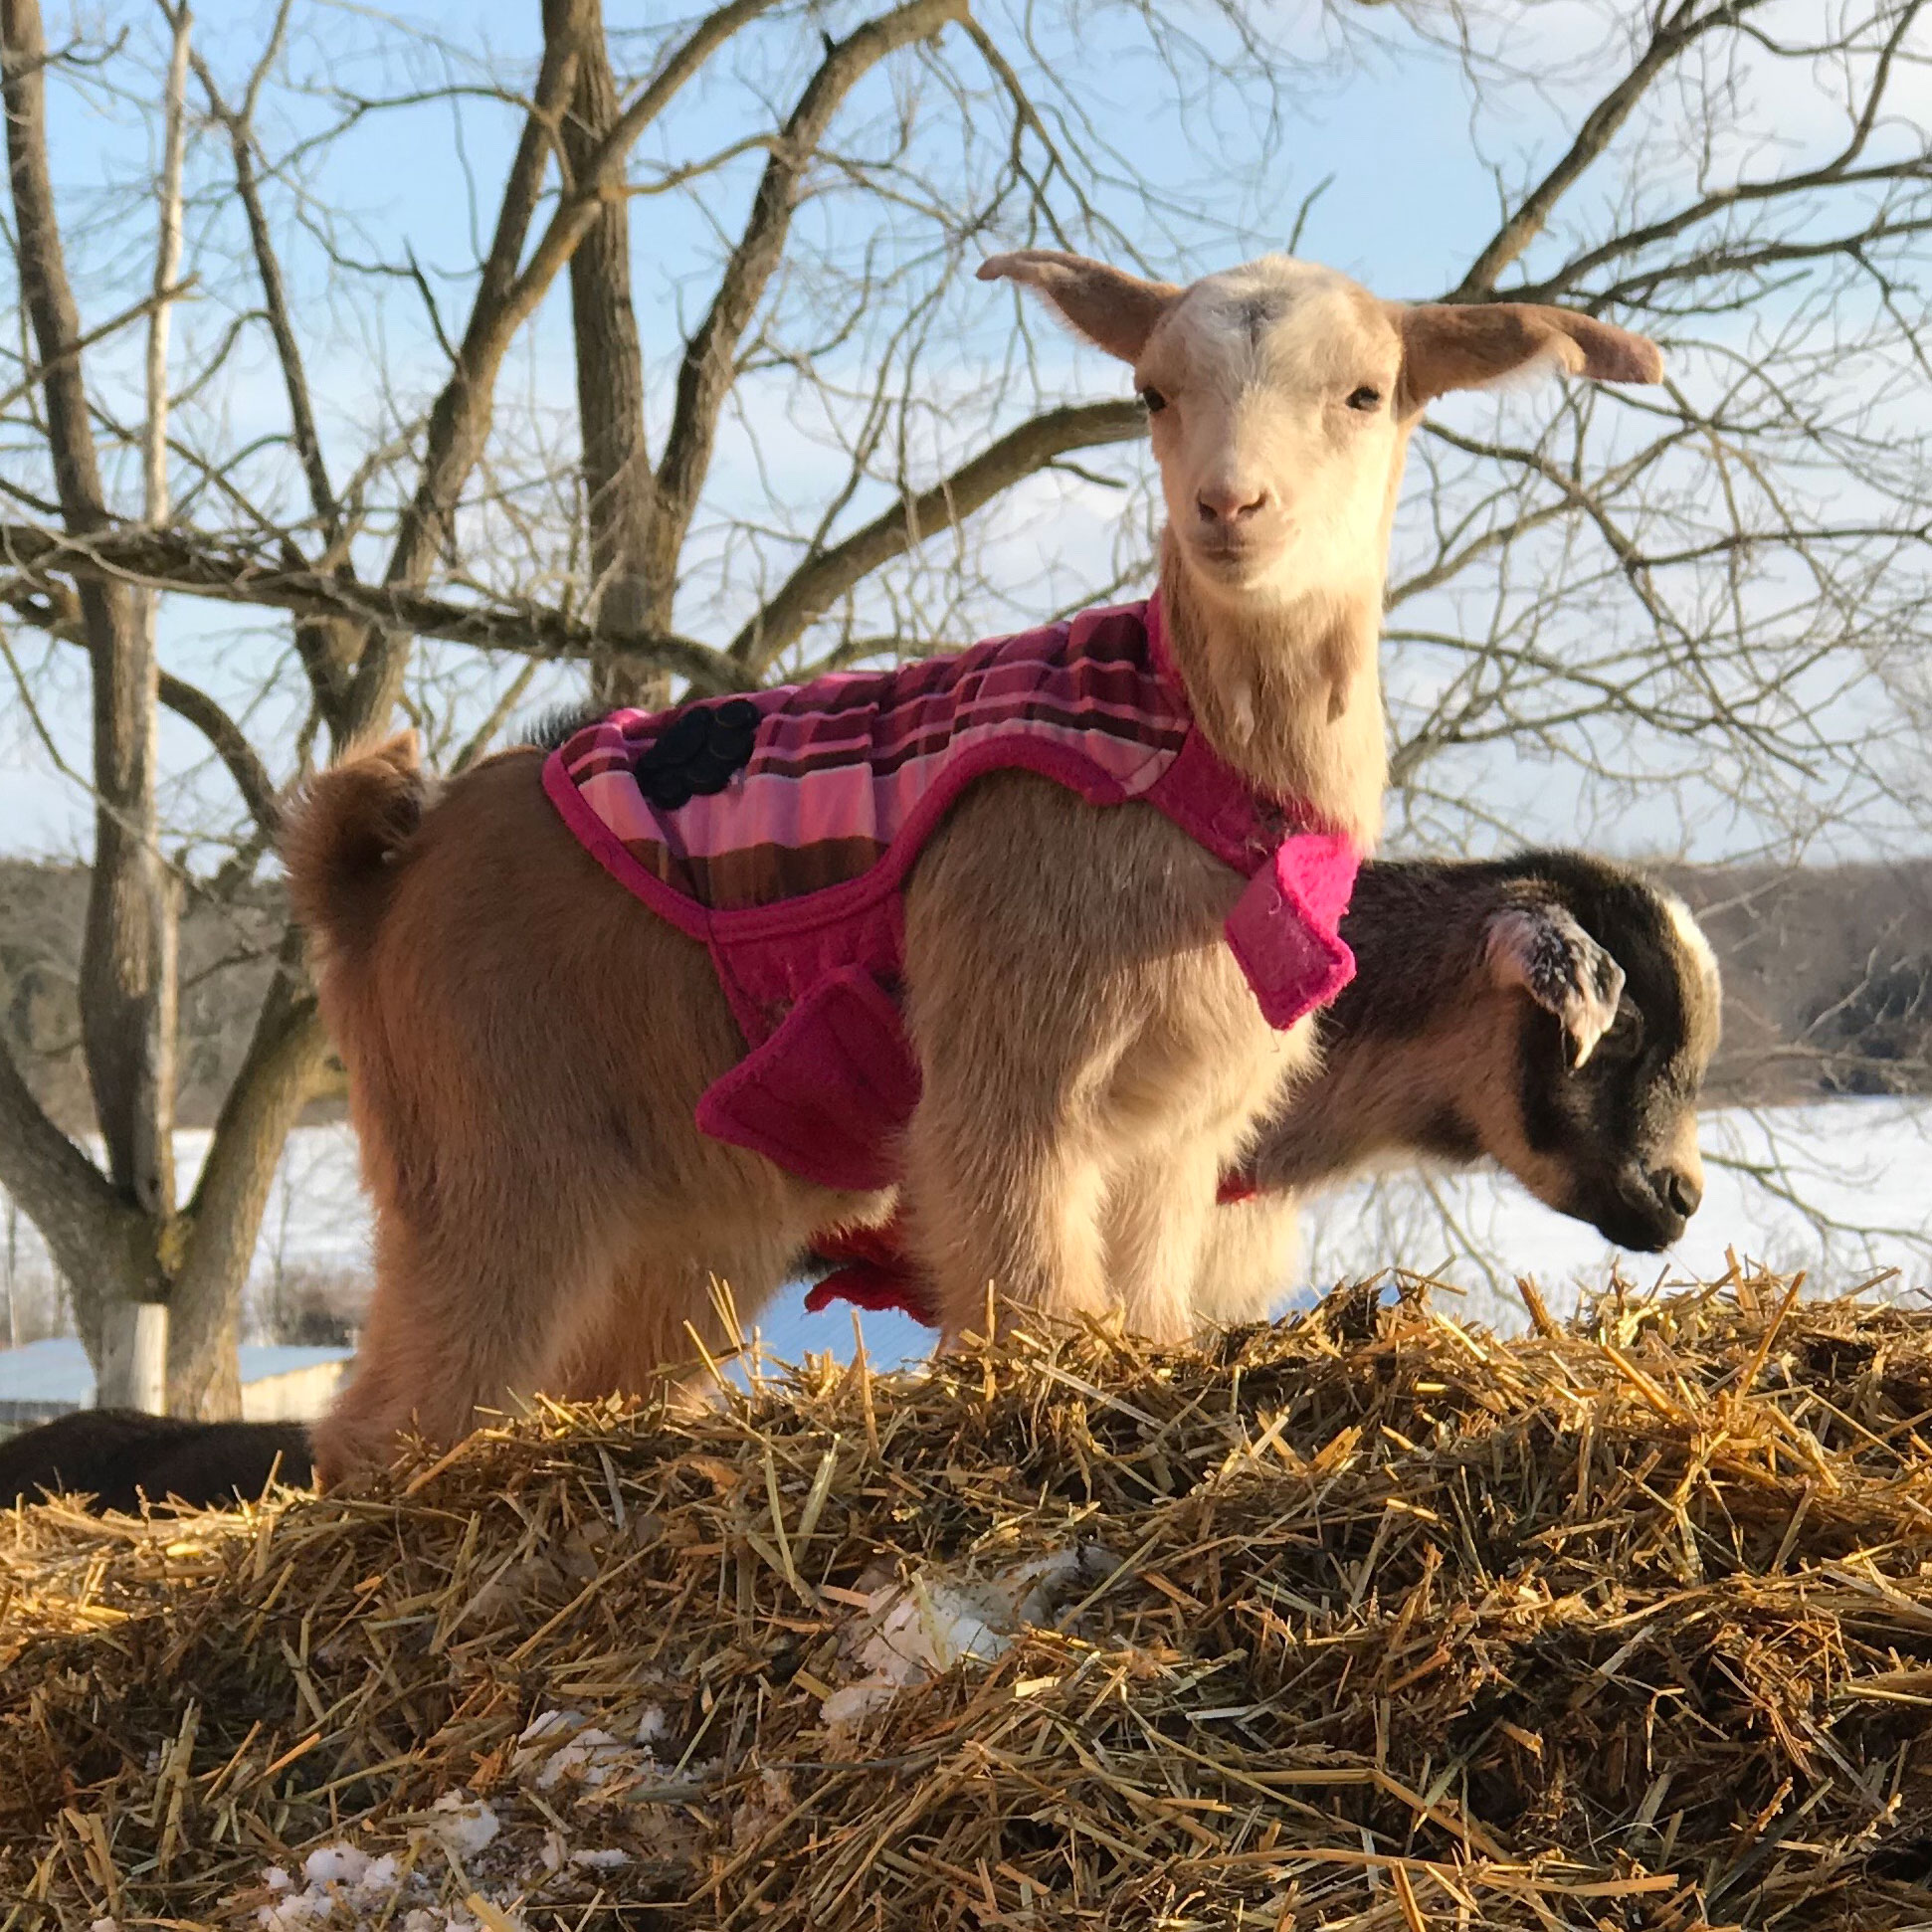 ELSA  Elsa and her sister Anna came along as excess baggage in Olive's tummy when we adopted three goats from Rimouski in December, 2017. On January 5, 2018, Elsa and her sister Anna surprised us by arriving a couple of months earlier than the vet had predicted. Because they were born in the frigid cold, the two kids take their names from the characters in the movie  Frozen . Elsa looks a lot like her beautiful Maa-Maa. Elsa is a polled goat, meaning she was born without horns (unlike her sister Anna!)